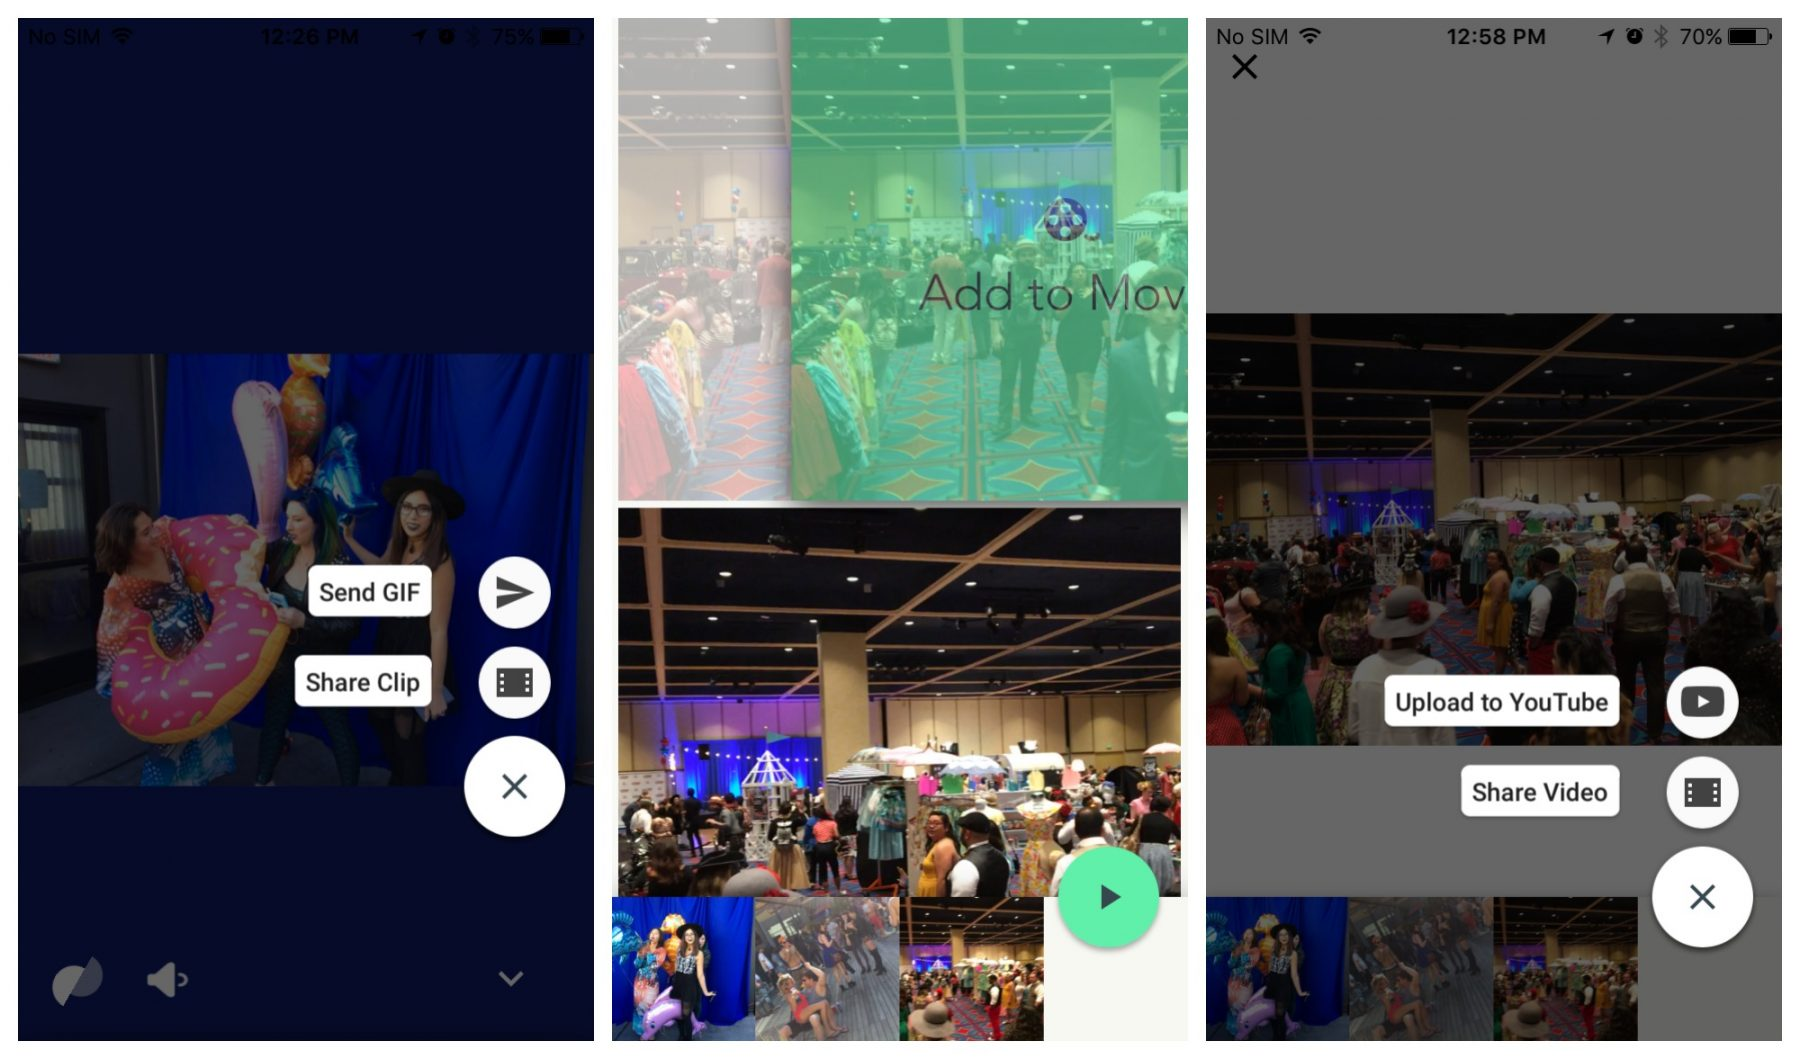 google-photos-2-0-for-ios-adds-motion-stills-feature